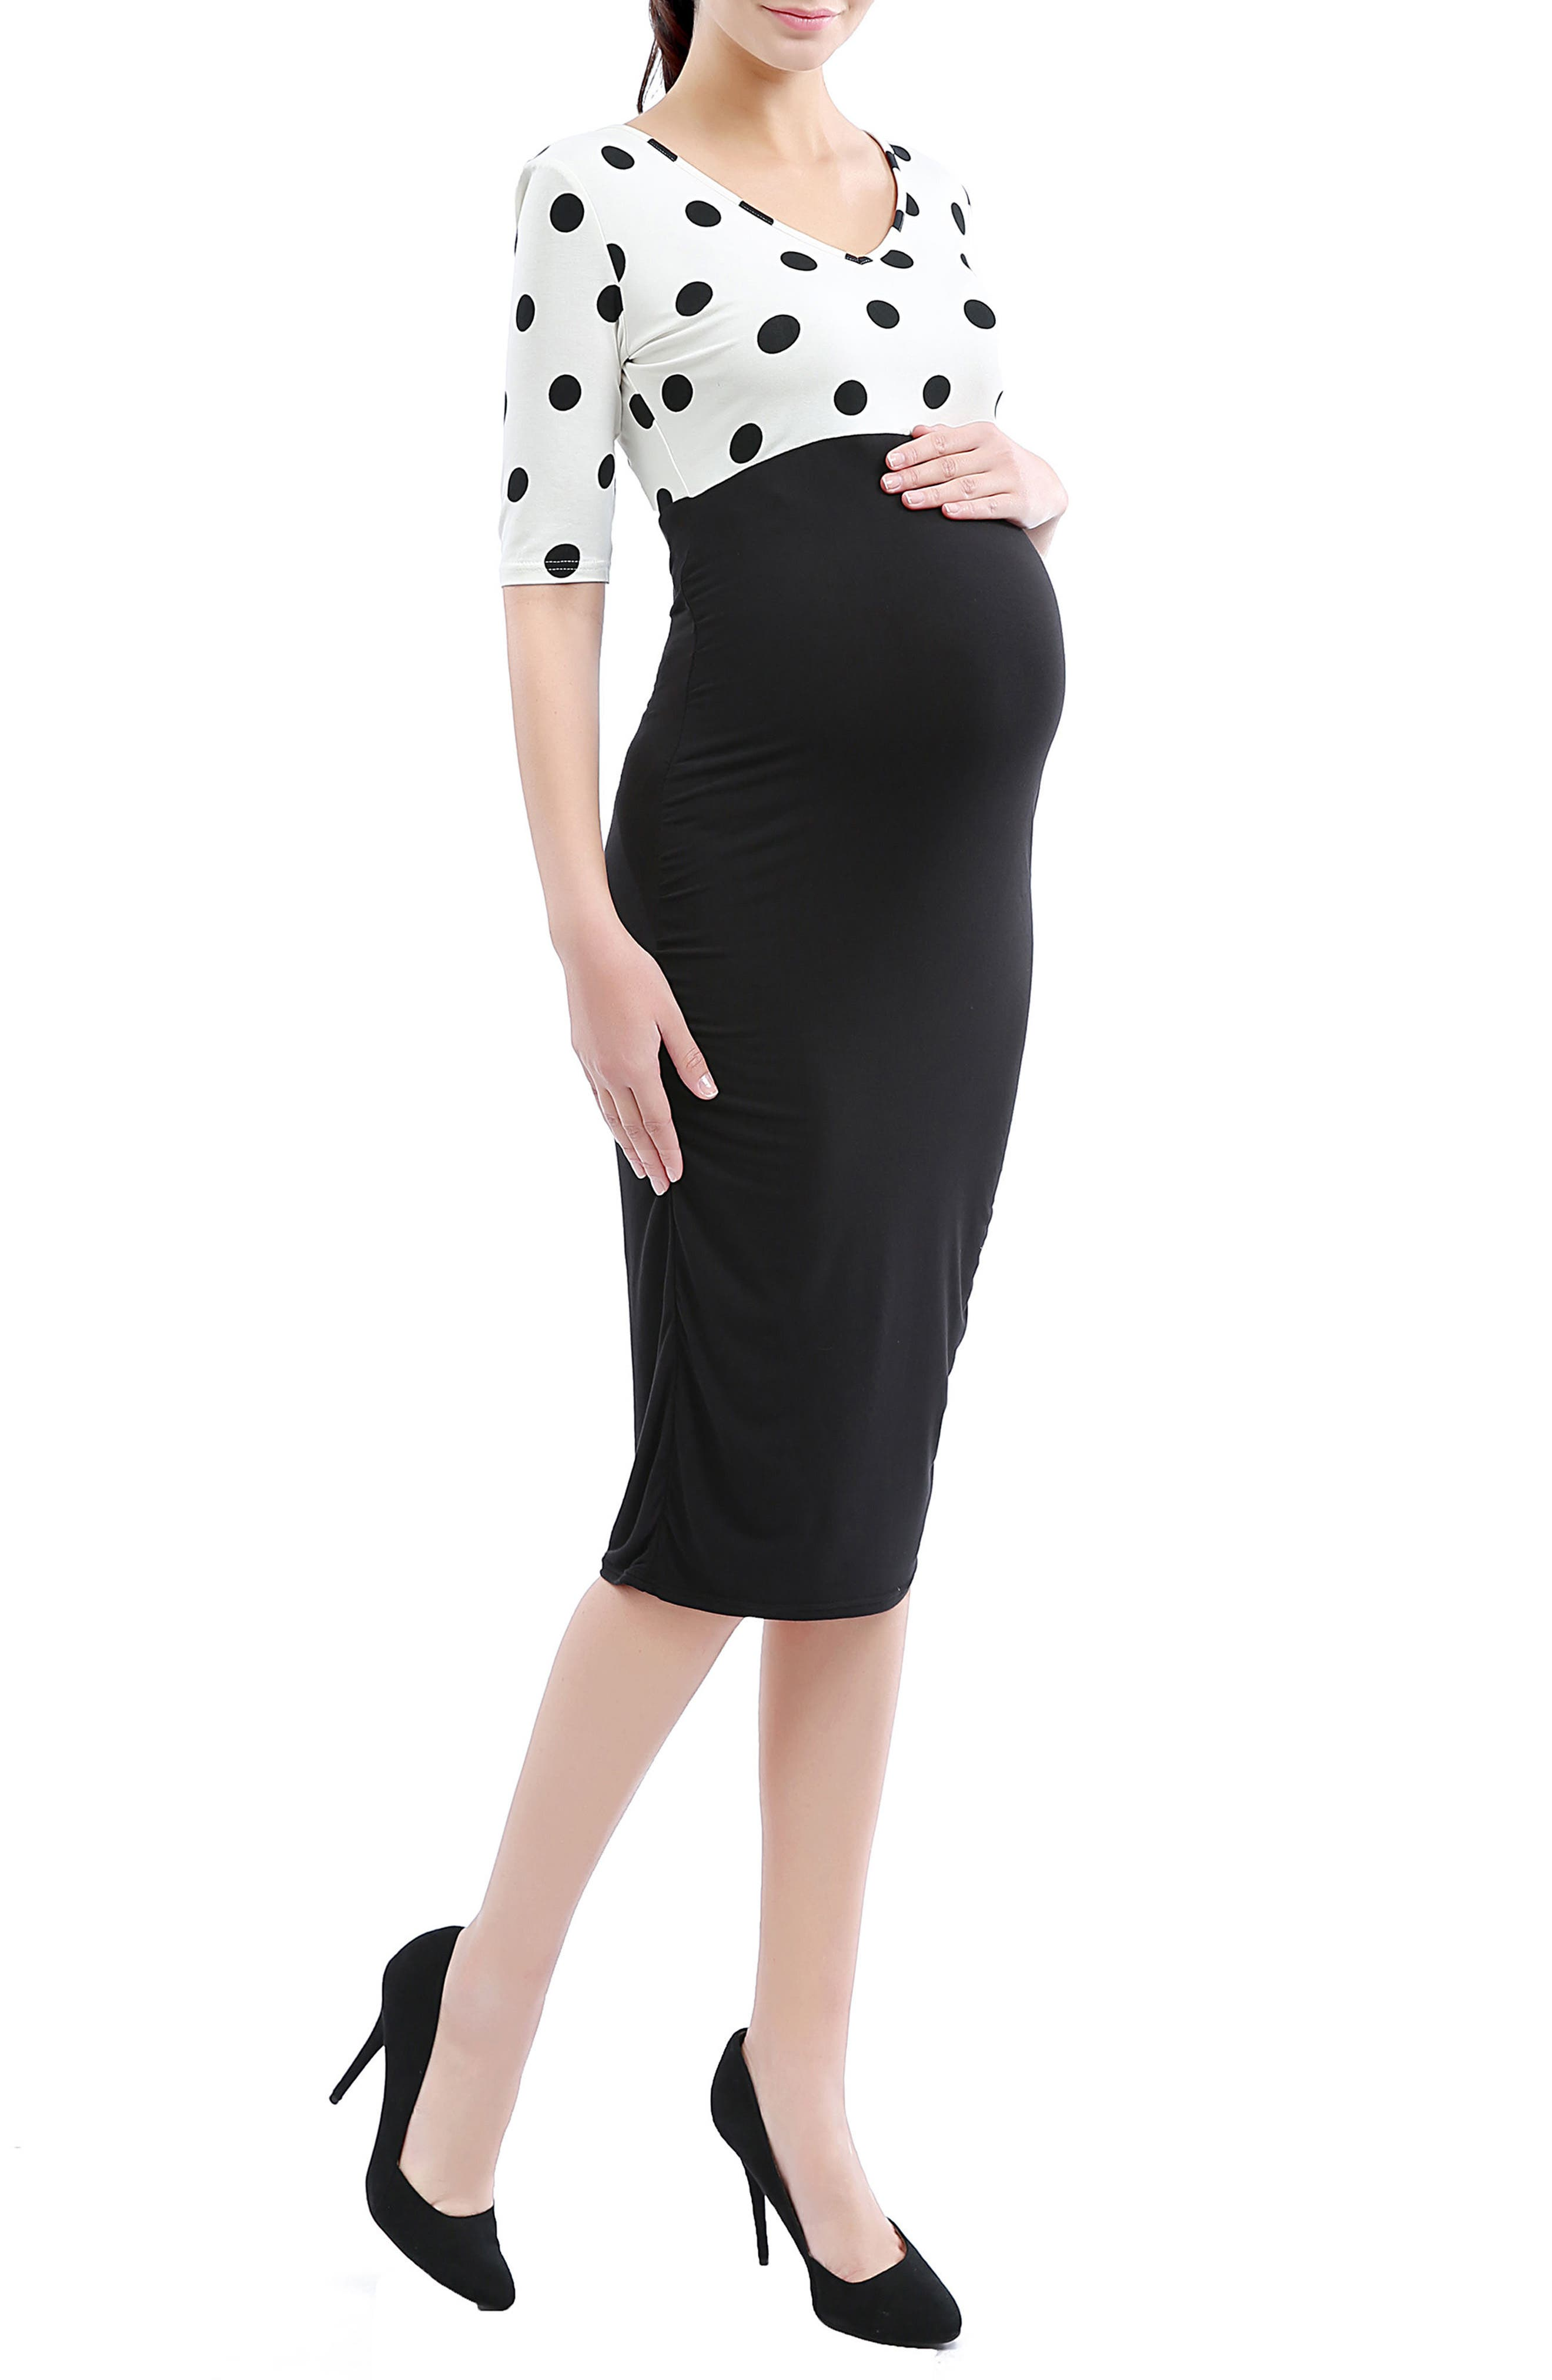 'Farrah' Maternity Body-Con Dress,                             Main thumbnail 1, color,                             001